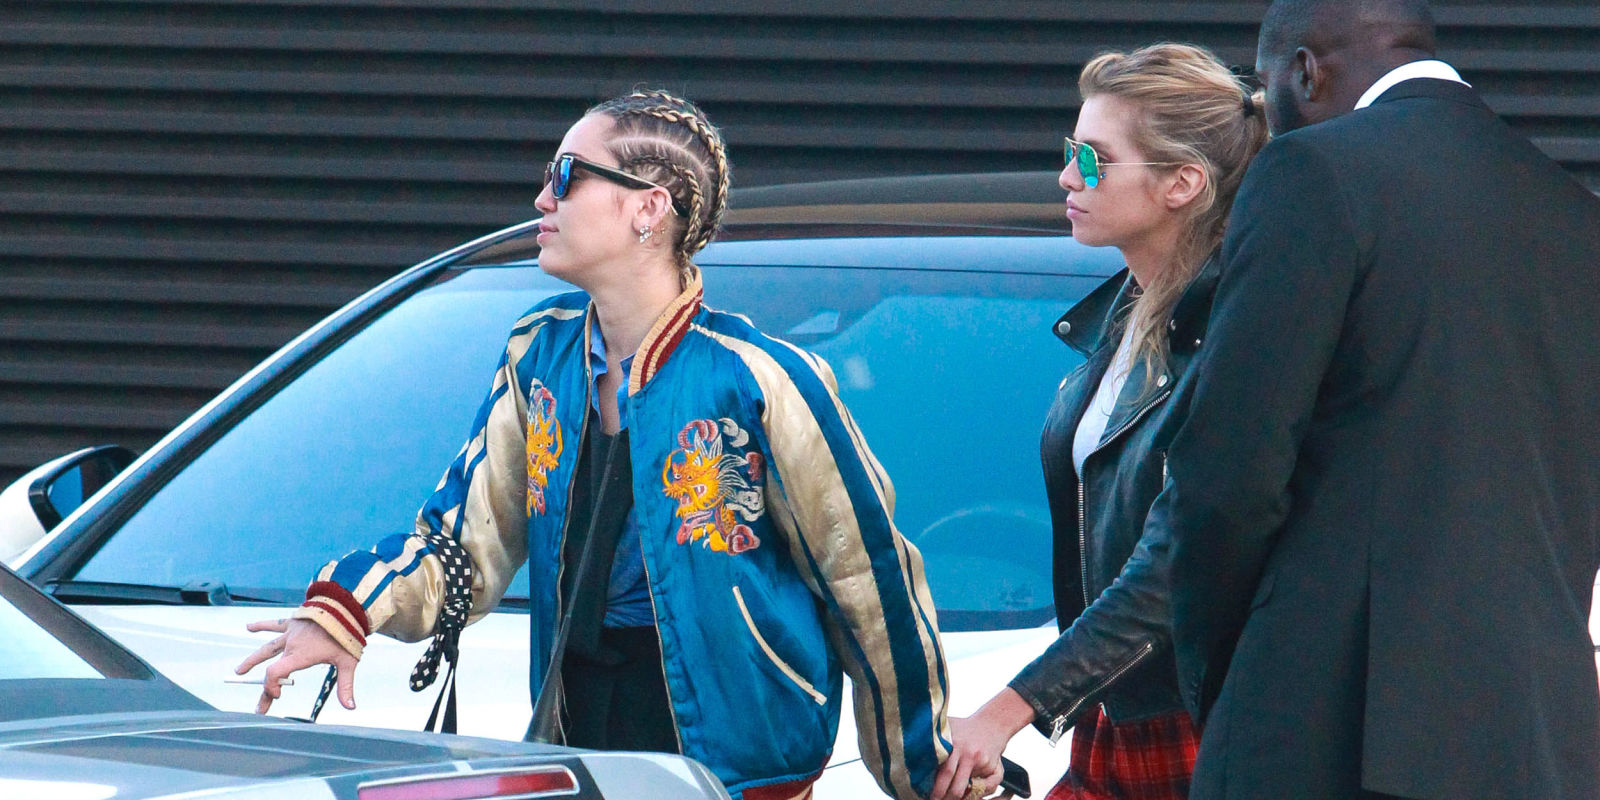 who is miley cyrus dating now 2013 Rumors that miley cyrus is dating kellan lutz began after they is miley cyrus dating kellan lutz by paige schwartz, december 18, 2013 click to.